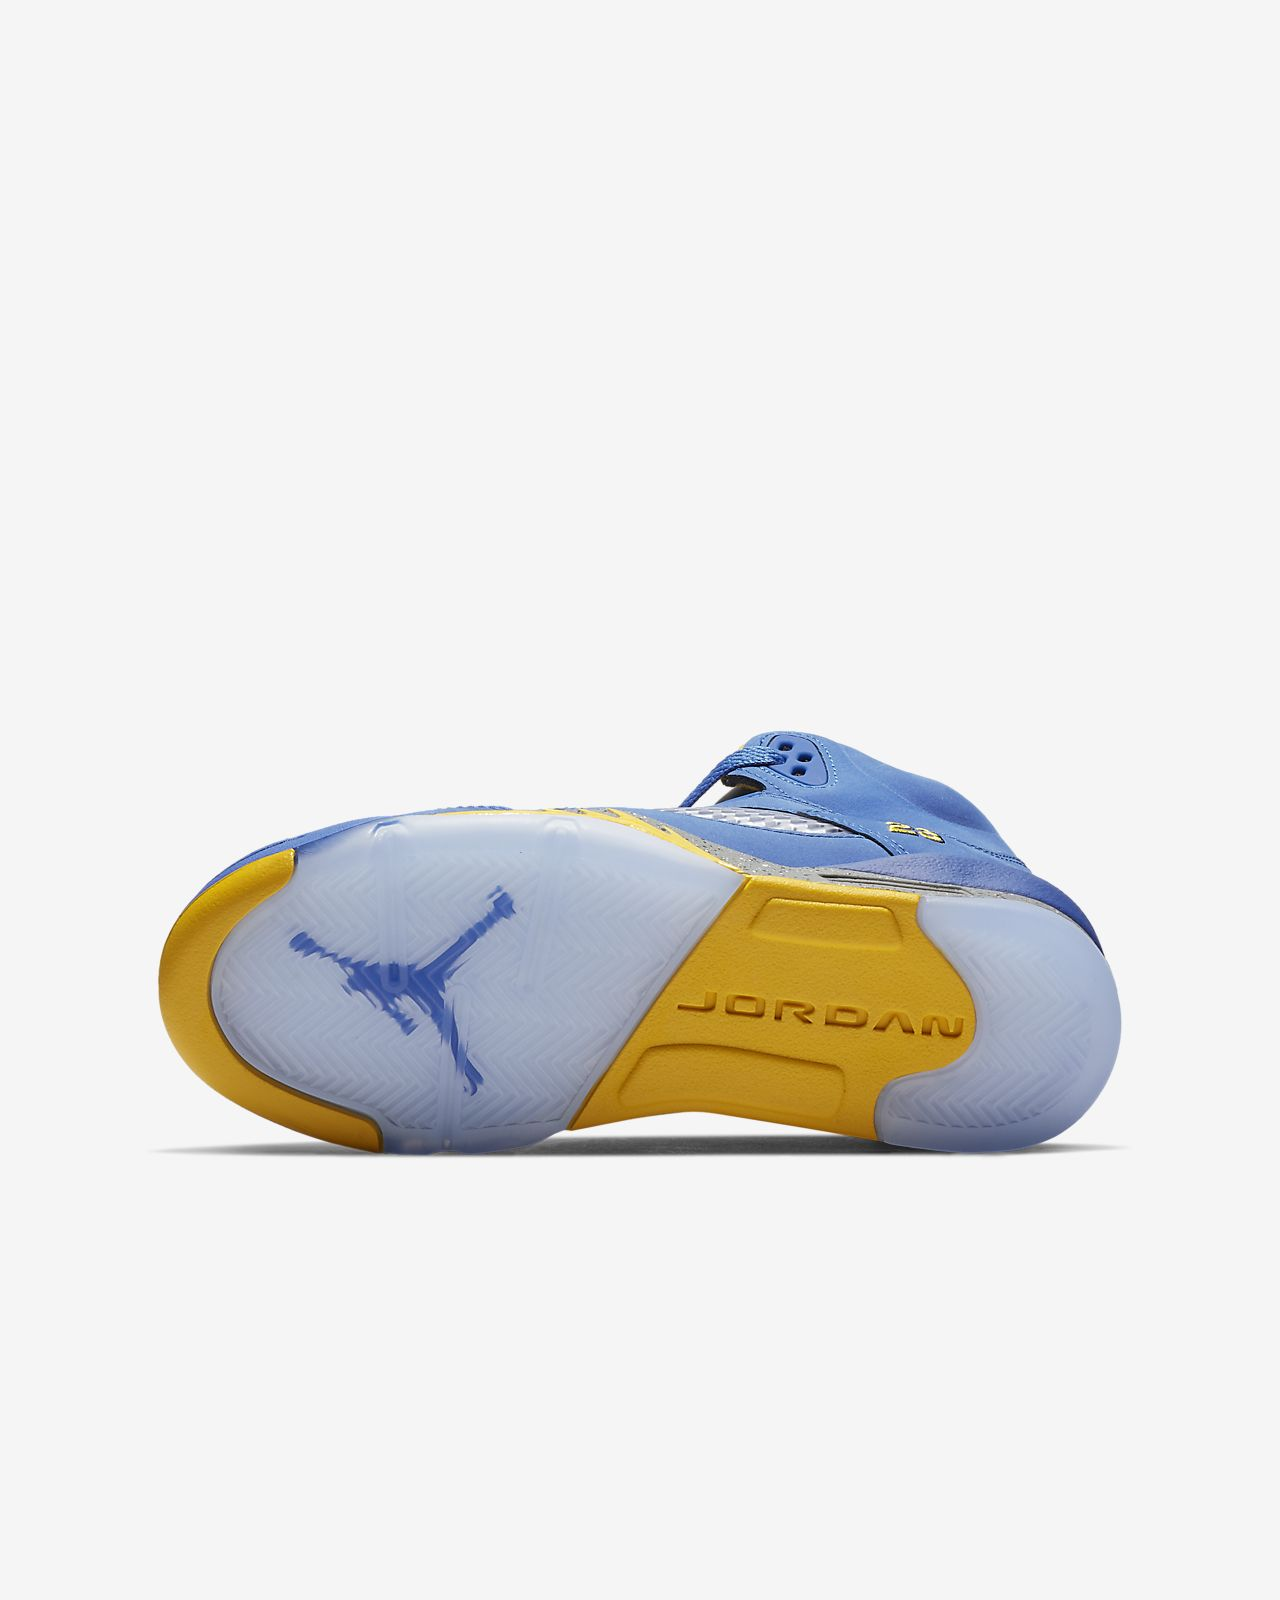 20b364acf1e5 Air Jordan 5 Laney JSP Big Kids Shoe. Nike.com